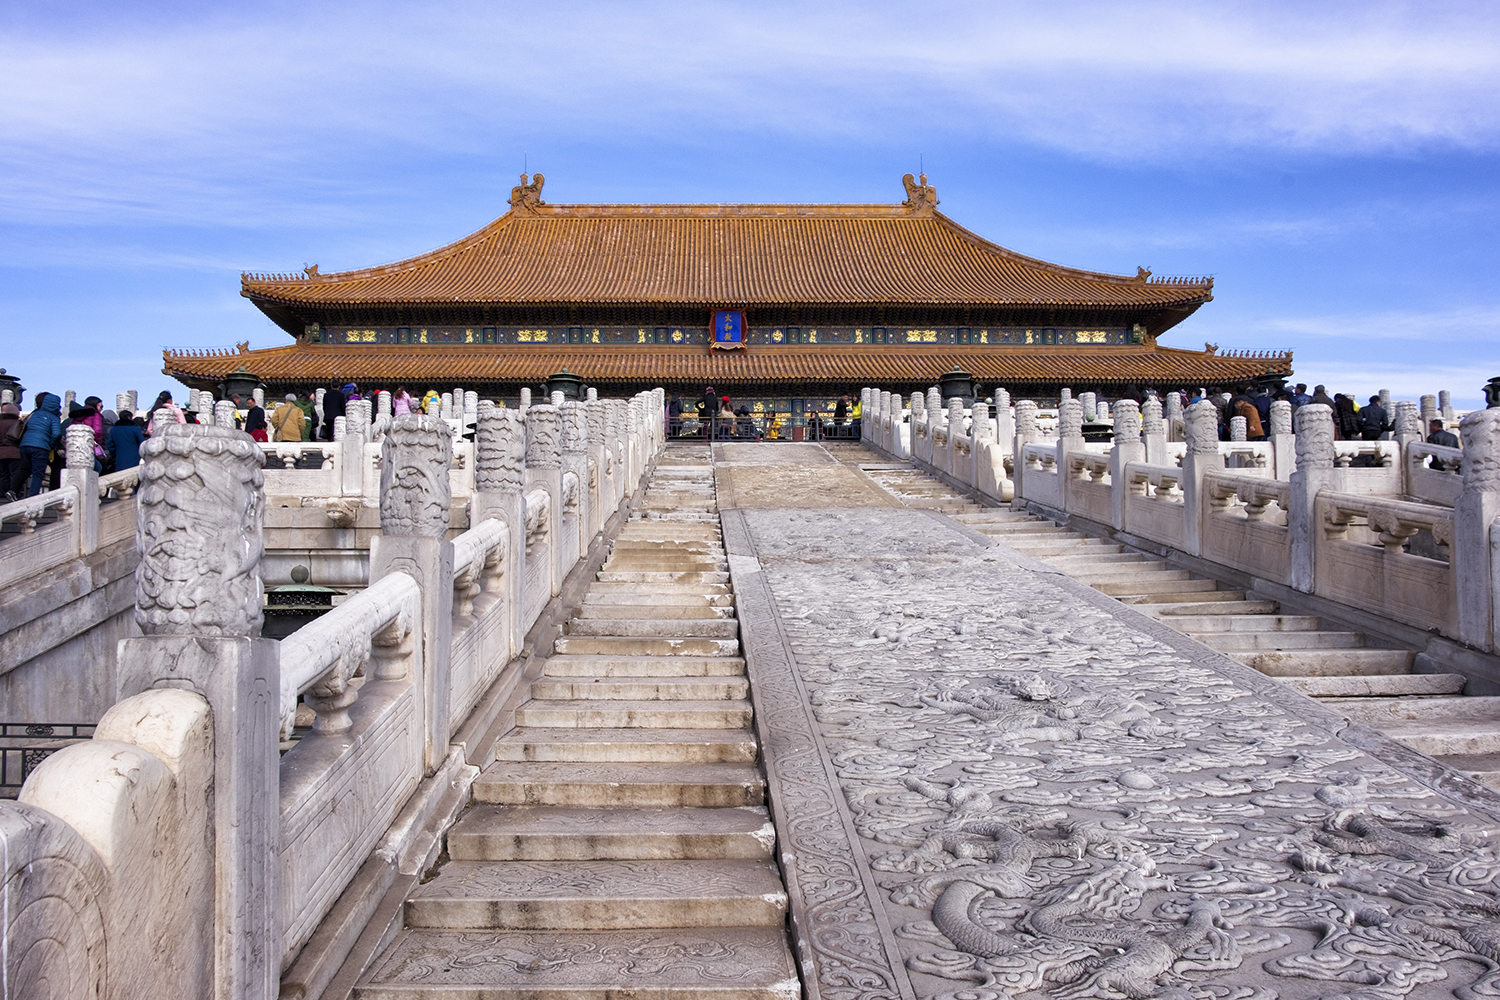 The Hall of Supreme Harmony, in the Forbidden City